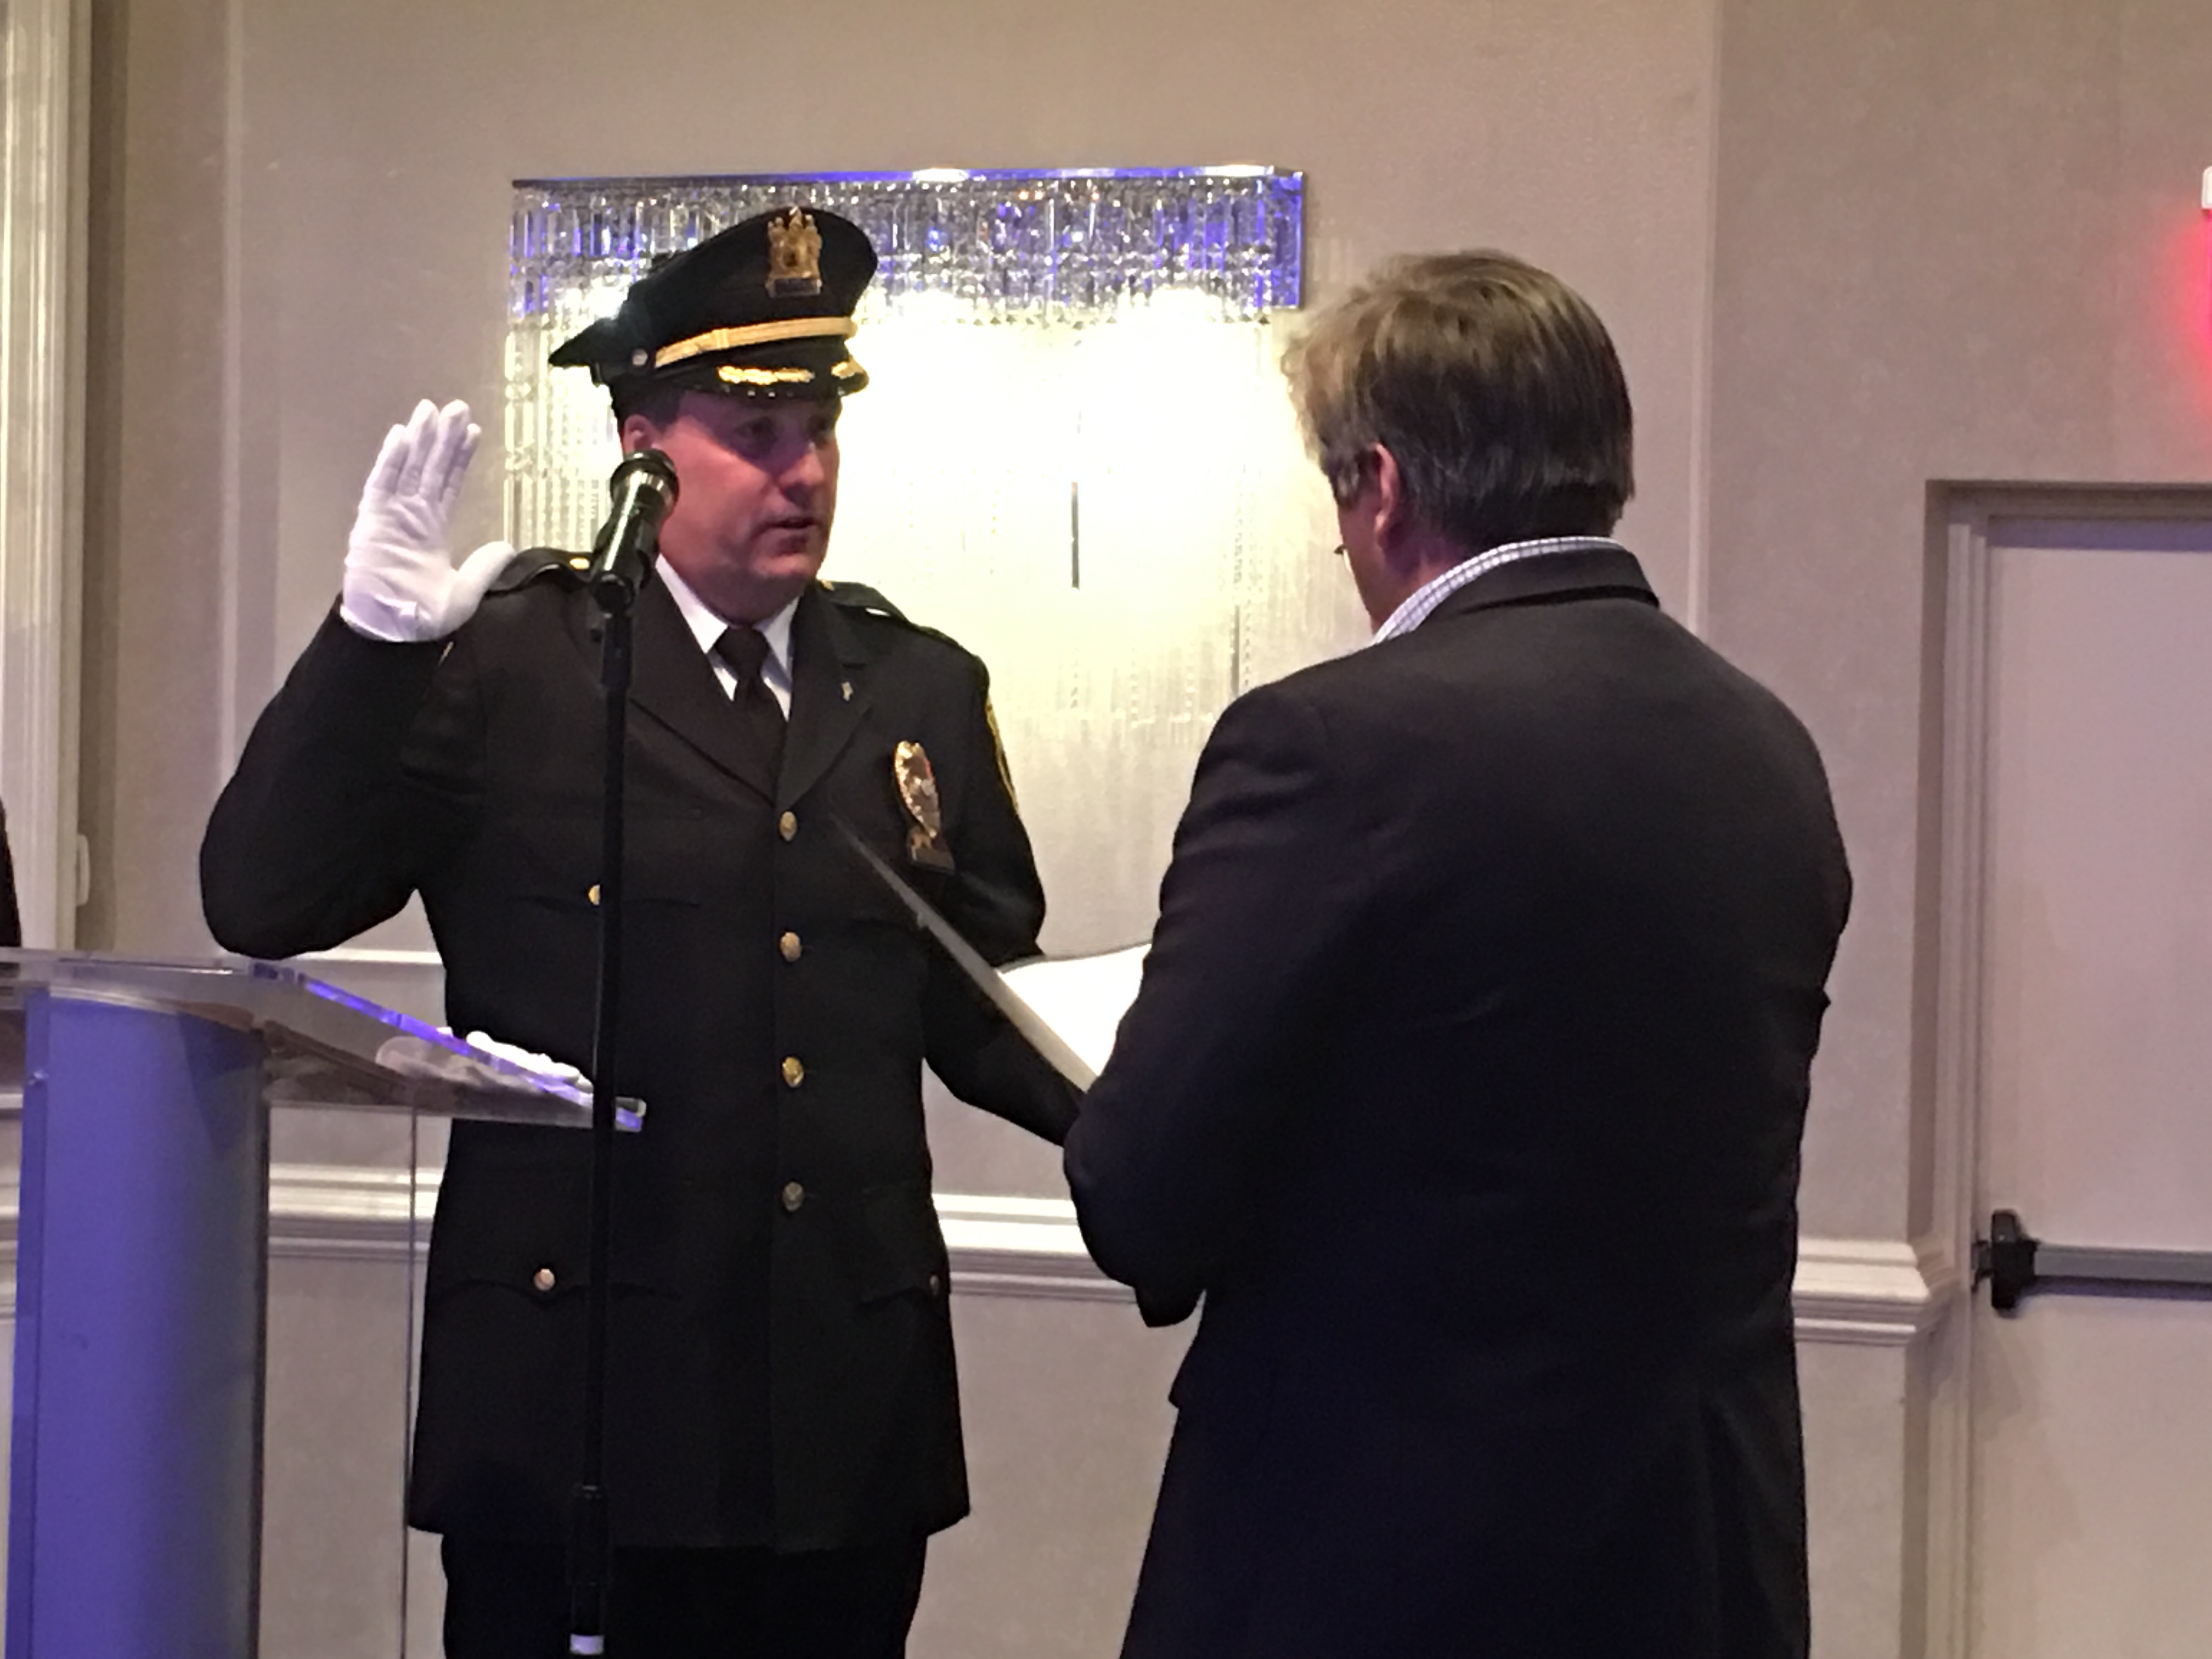 c1a8479df9ee5c0225a49298365357e45b163ce5CaptainMichaelKeigherjpg Four West Orange Police Officers Promoted